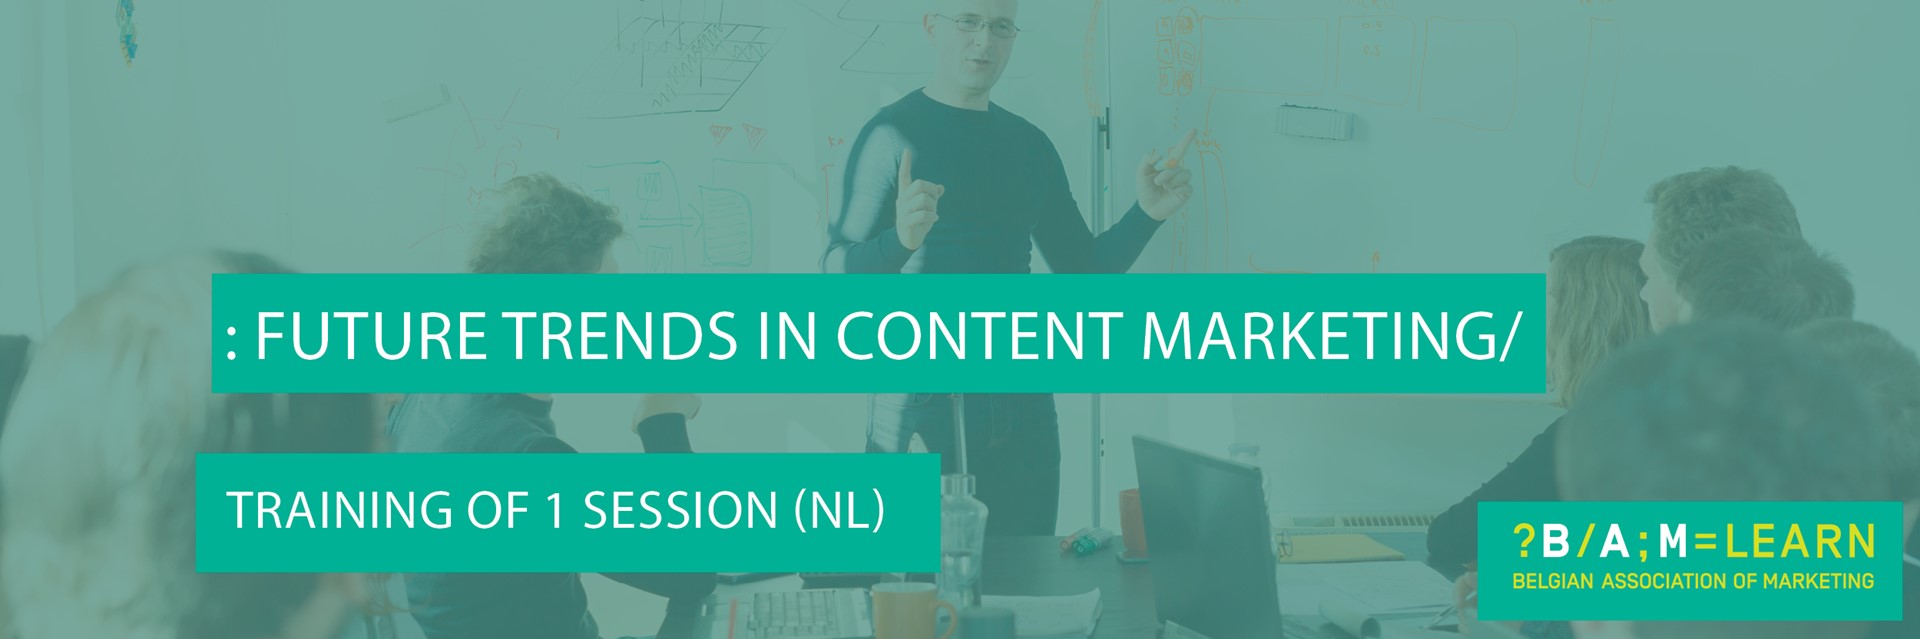 future trends in content marketing